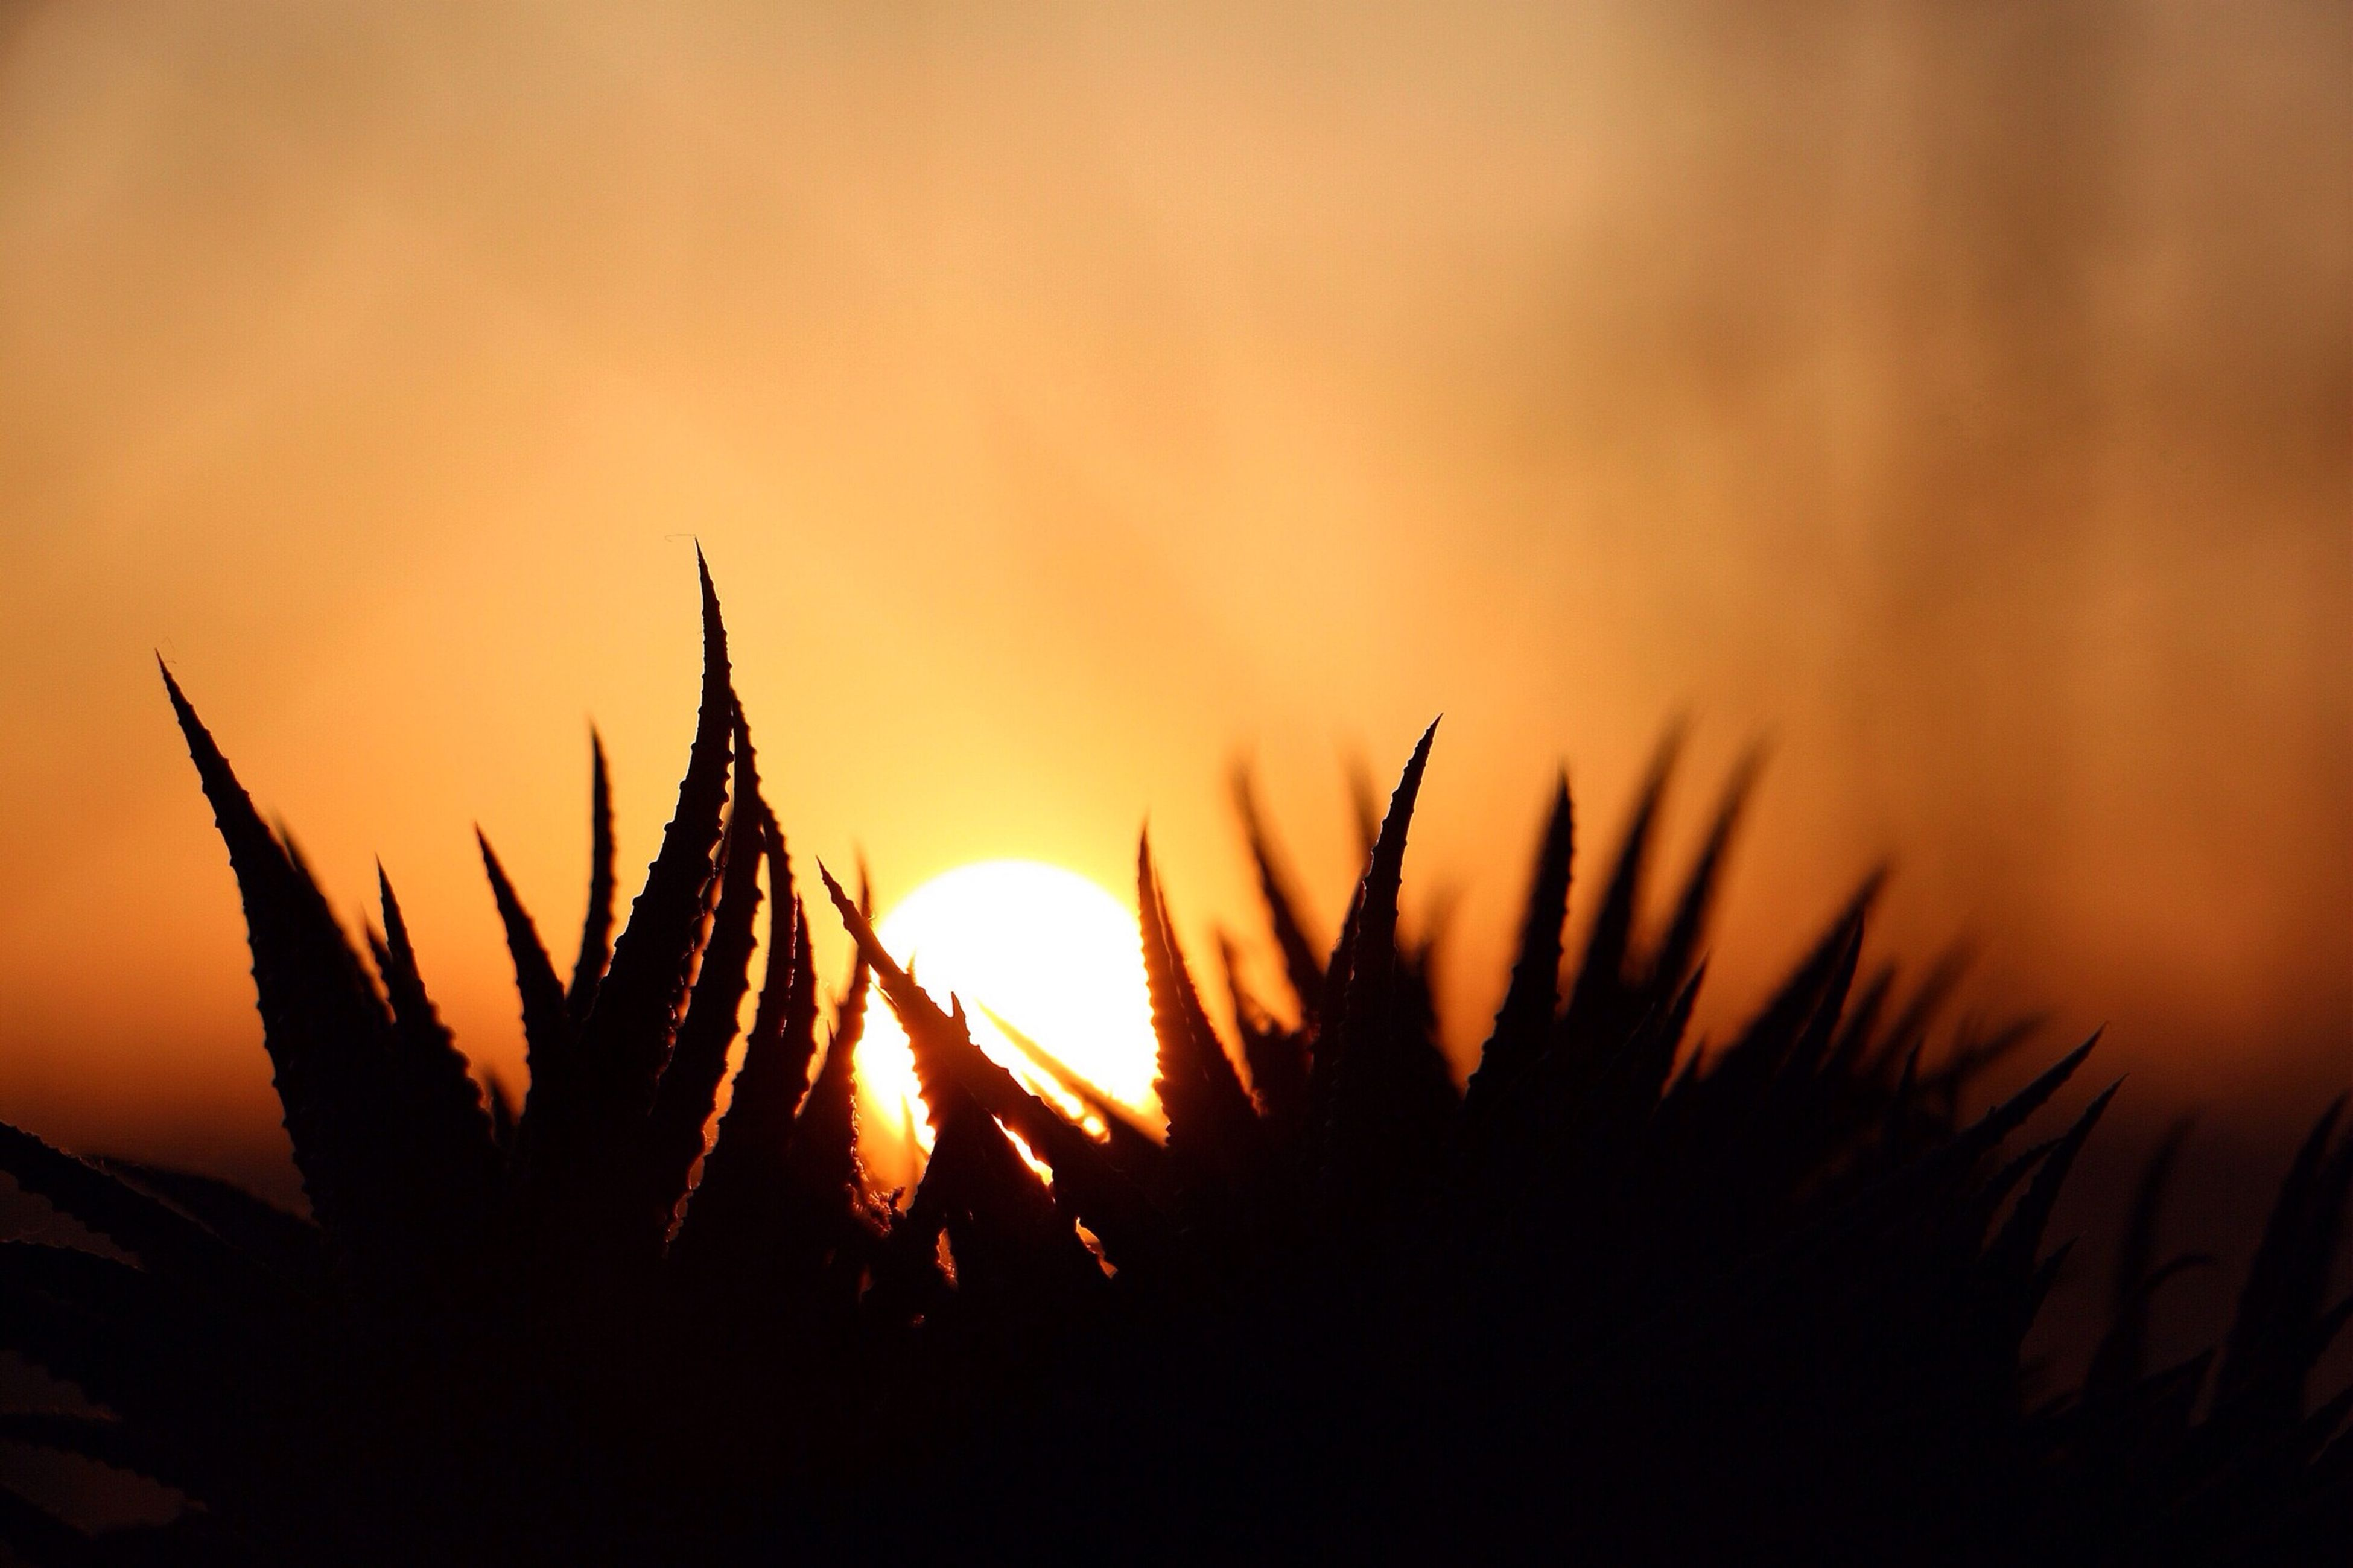 sunset, silhouette, growth, plant, nature, beauty in nature, orange color, sun, tranquility, focus on foreground, sky, close-up, tranquil scene, selective focus, outdoors, scenics, stem, field, no people, sunlight